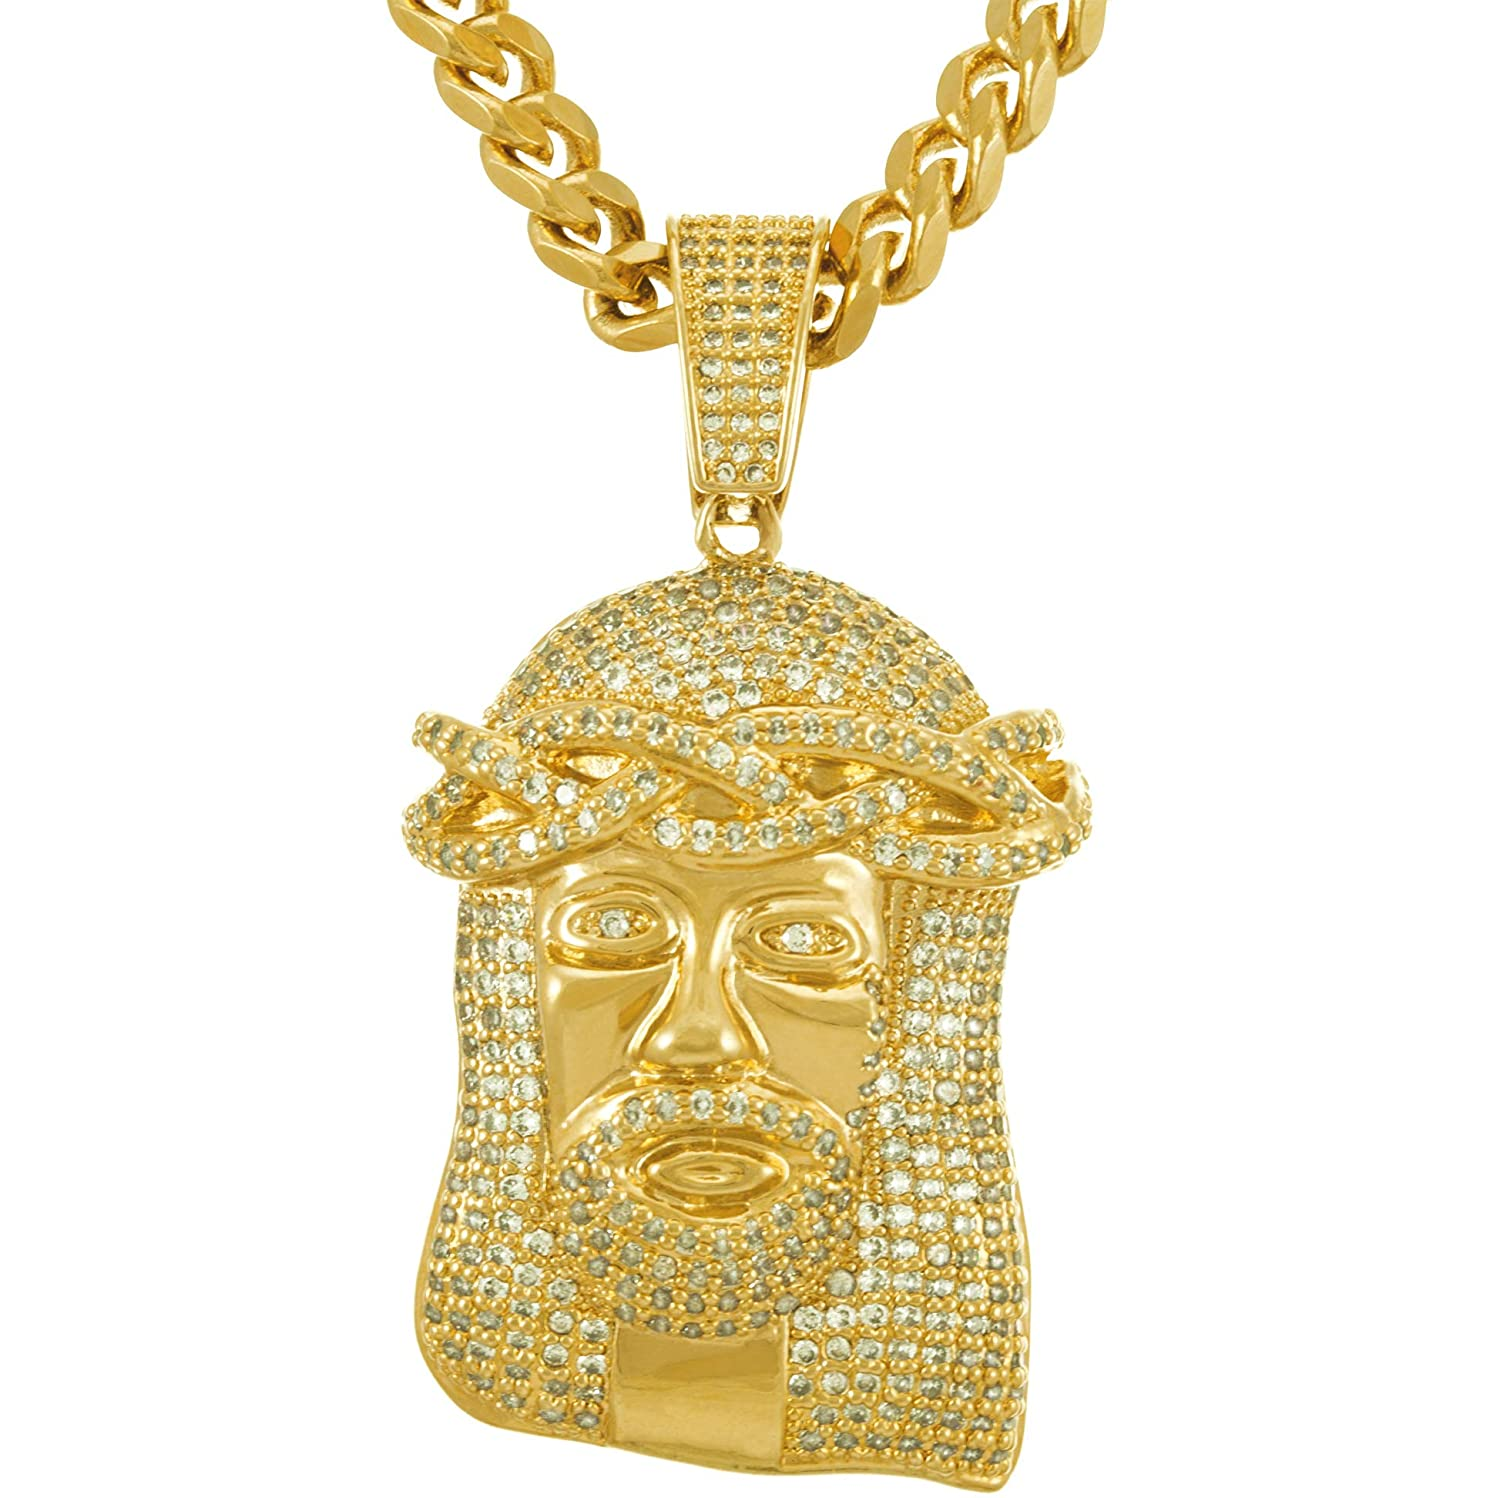 3f1748032 Lifetime Jewelry Jesus of Nazareth [ Face of Christ Pendant ] 20X More 24k  Real Gold Plating Than Other Fashion Necklaces - with or without CZ Stones  on 20